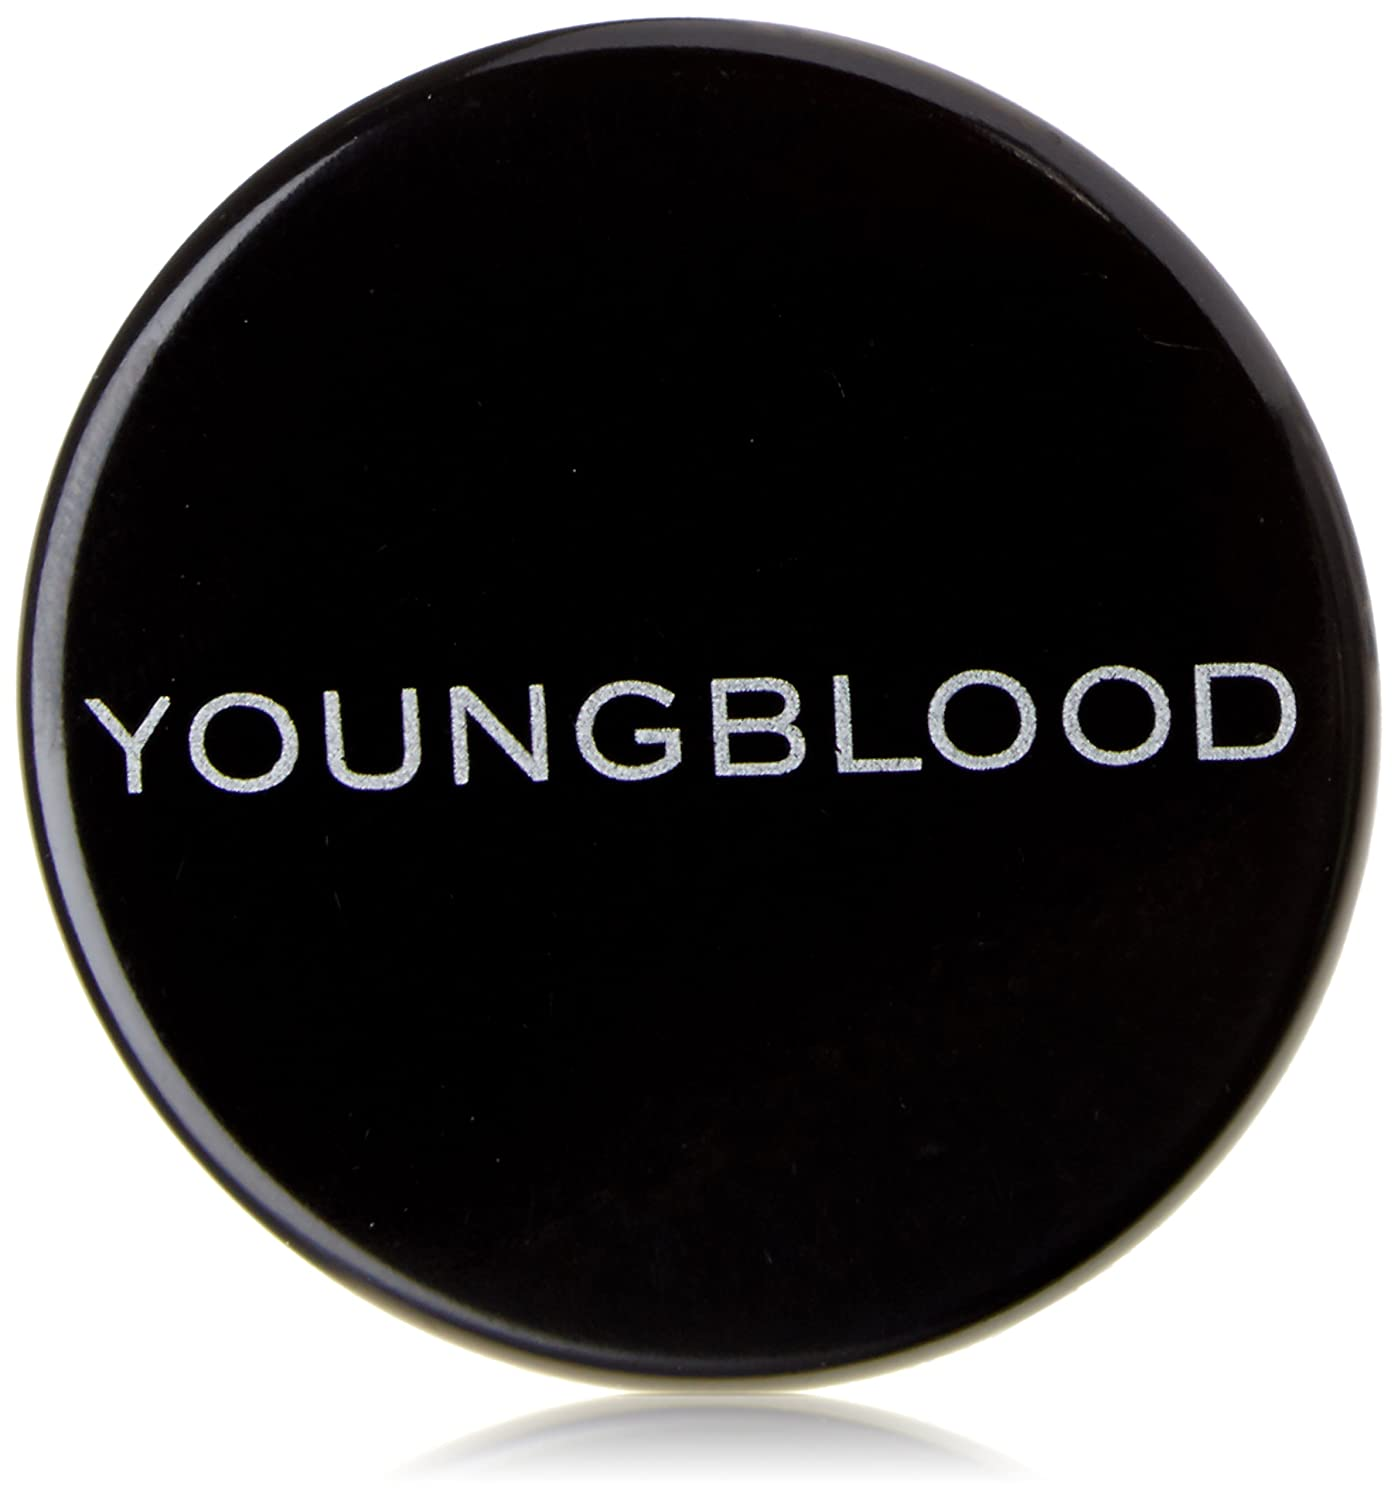 Youngblood Crushed Mineral Blush, Tulip, 3gm 696137070070